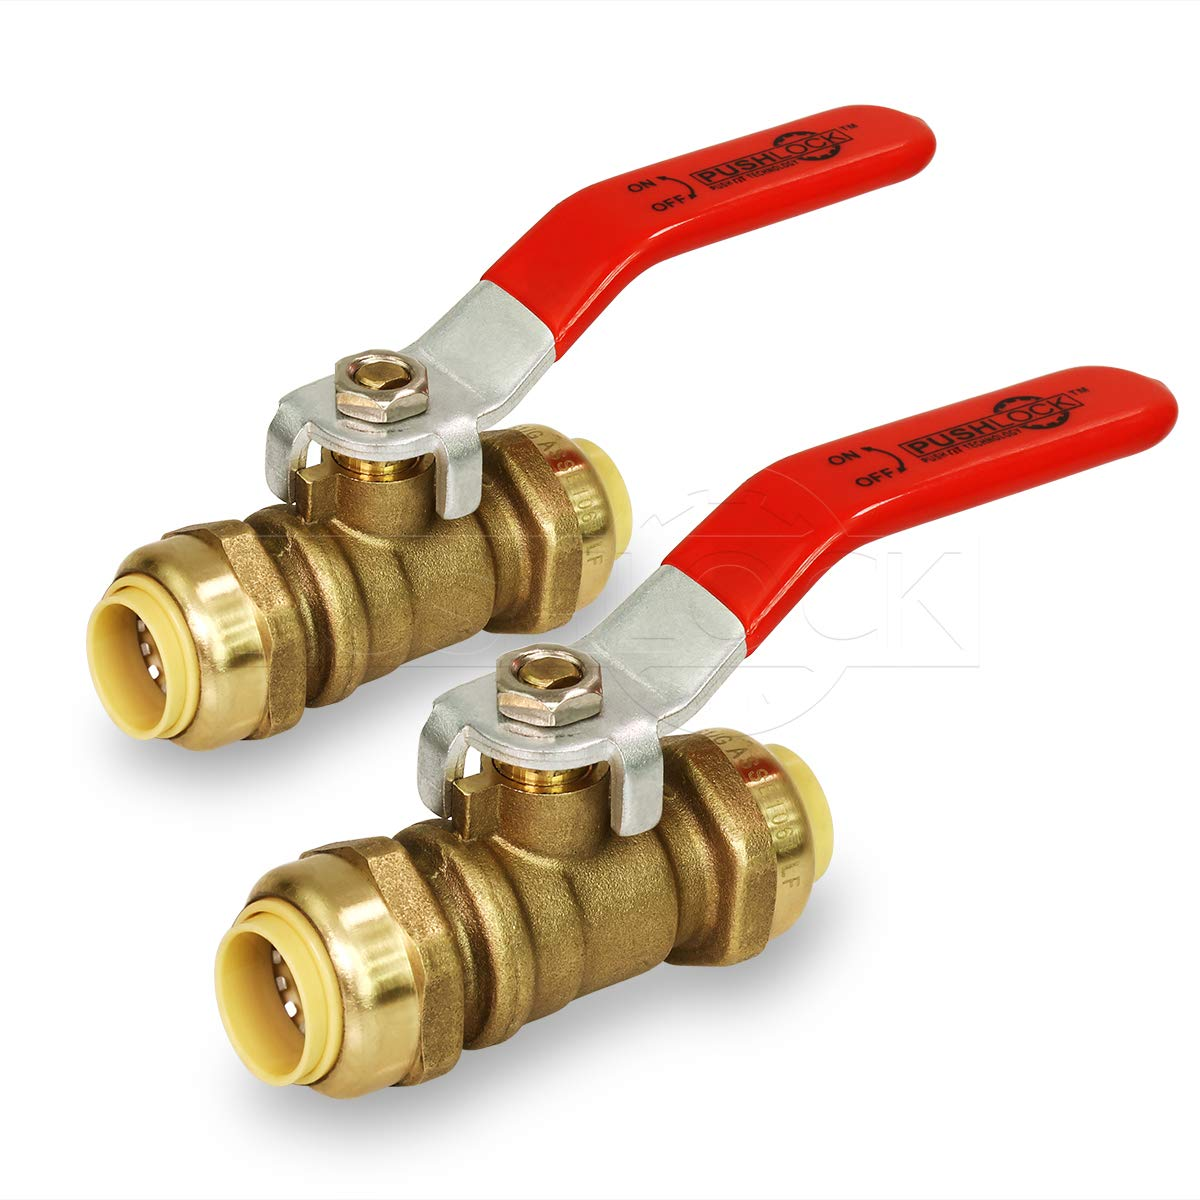 Pushlock UPBV12-2 Full Port fit Ball Valve Water Shut Off Push to Connect PEX,Copper, CPVC, 1/2 Inch, Brass Pack of 2